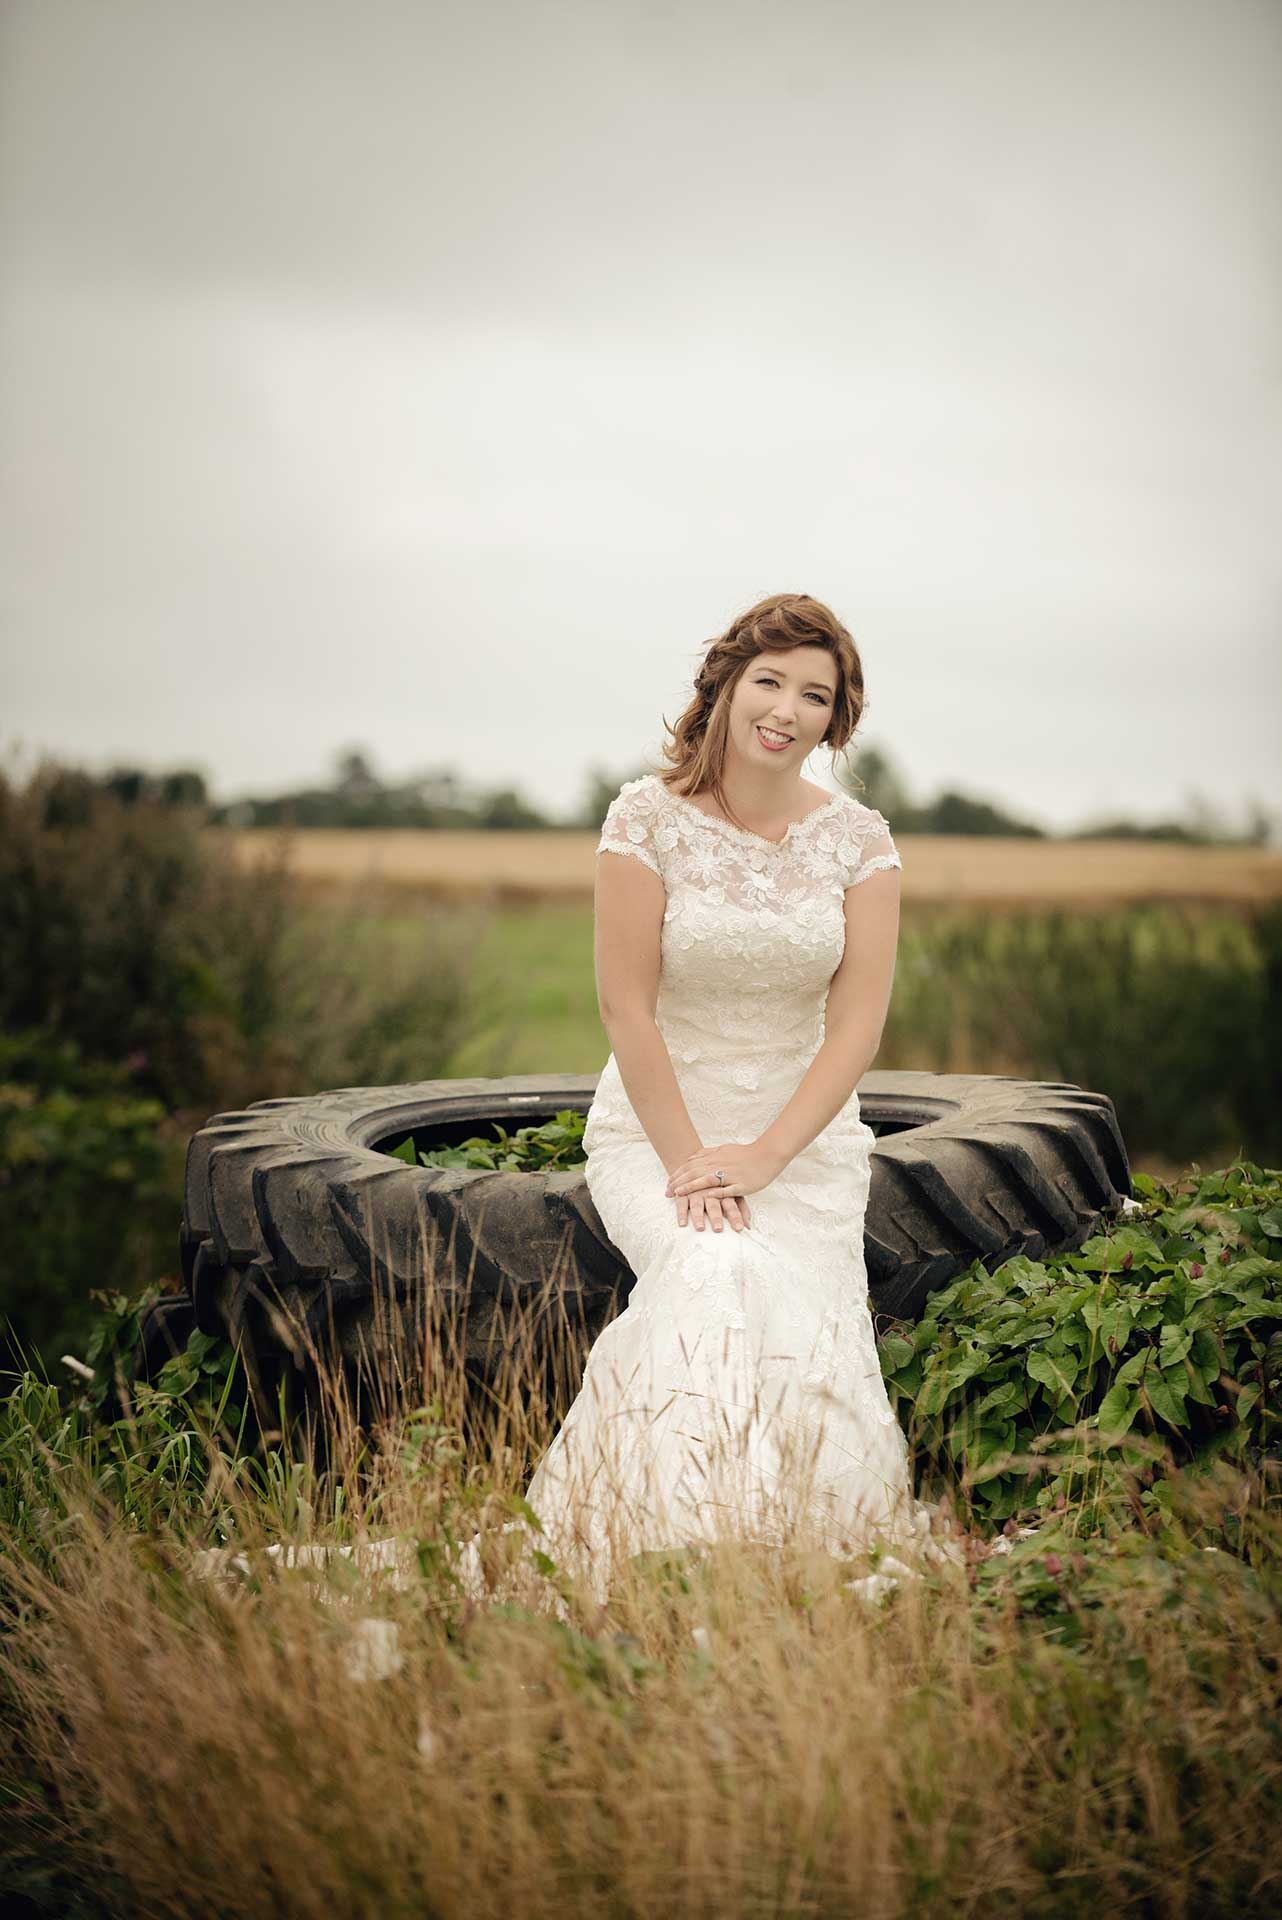 Bridal fashion shoot on a farm with an old tyre